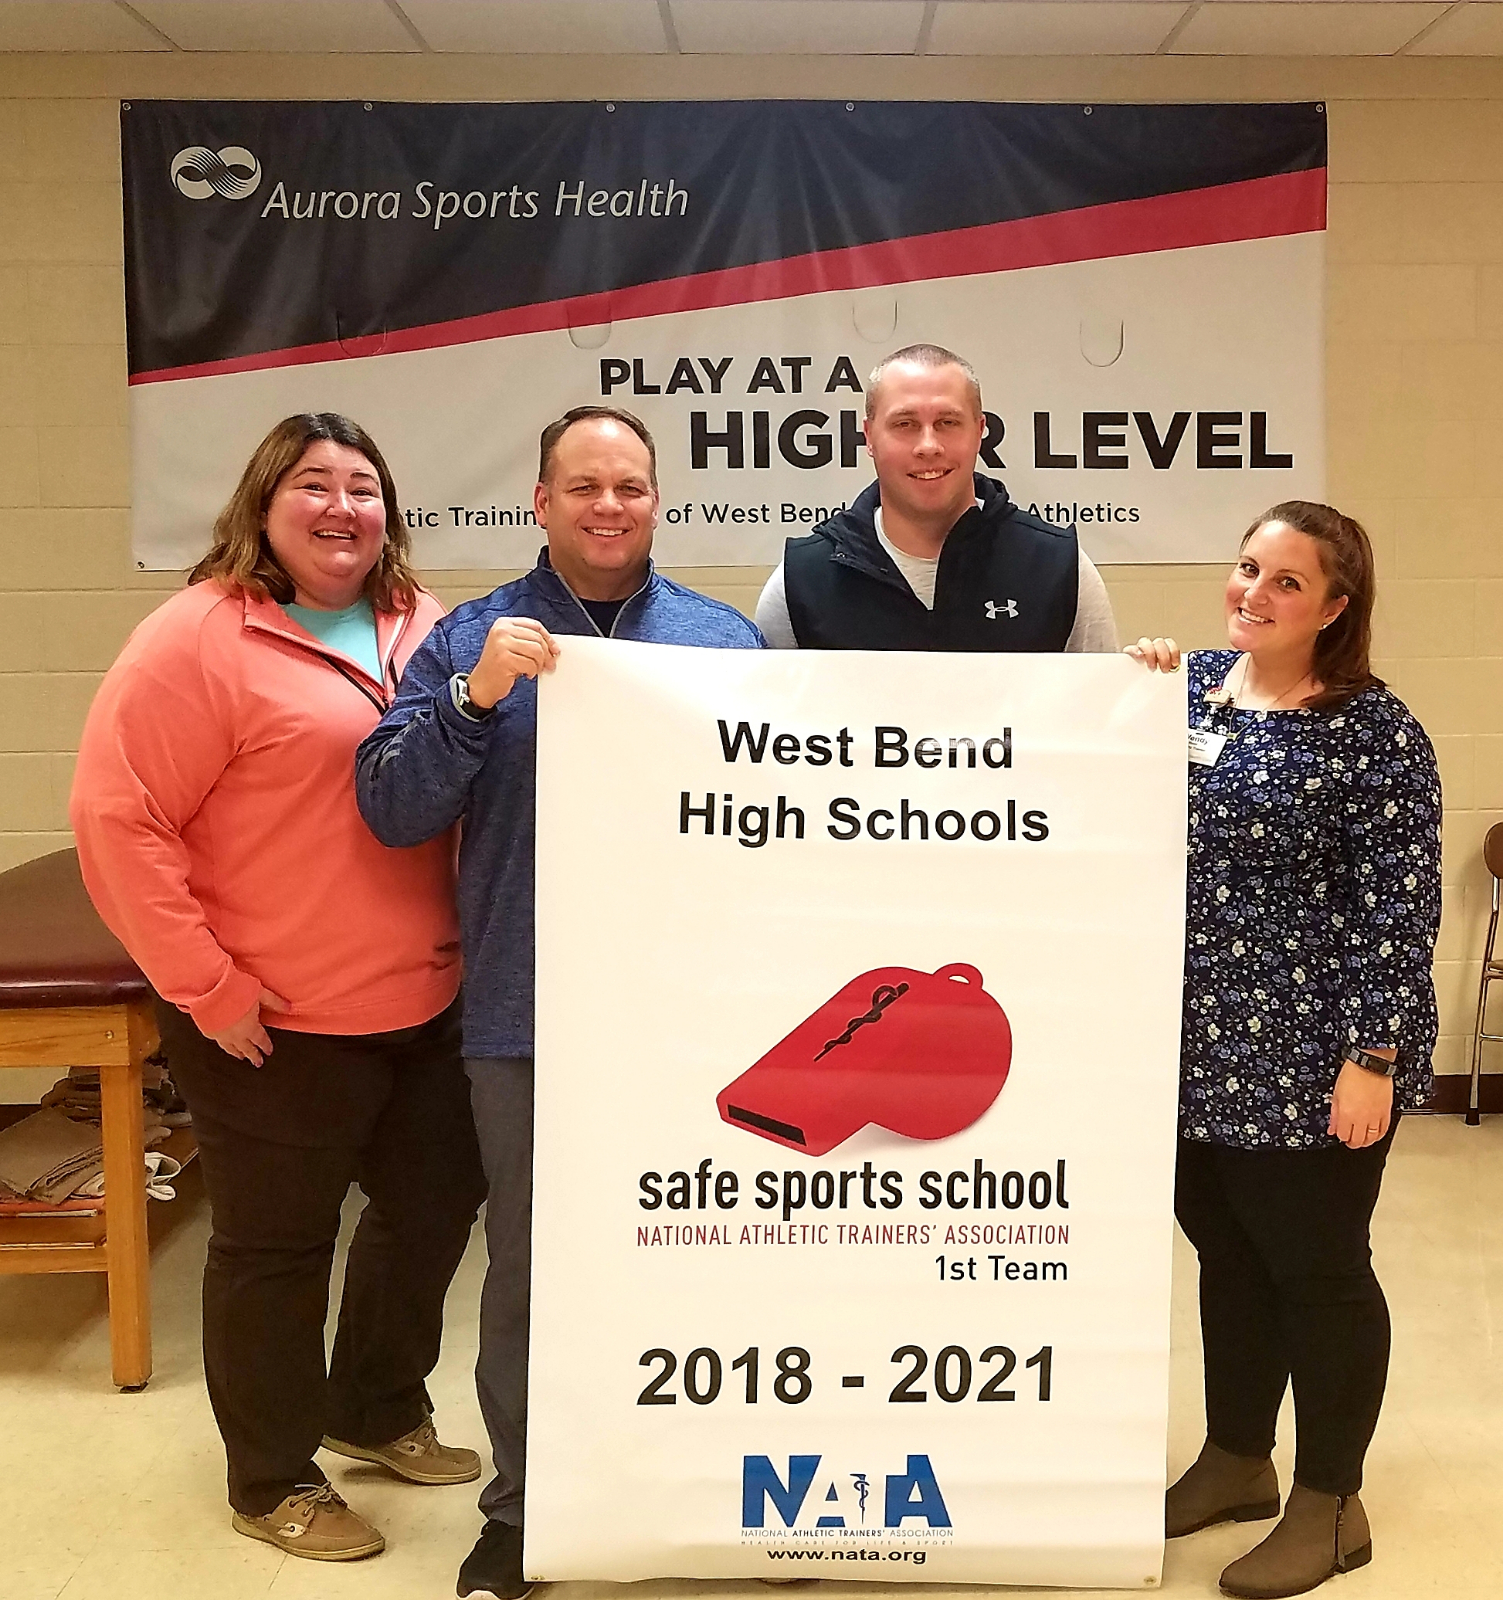 WEST BEND EAST AND WEST ATHLETICS RECEIVE NATIONAL ATHLETIC TRAINING ASSOCIATION AWARD